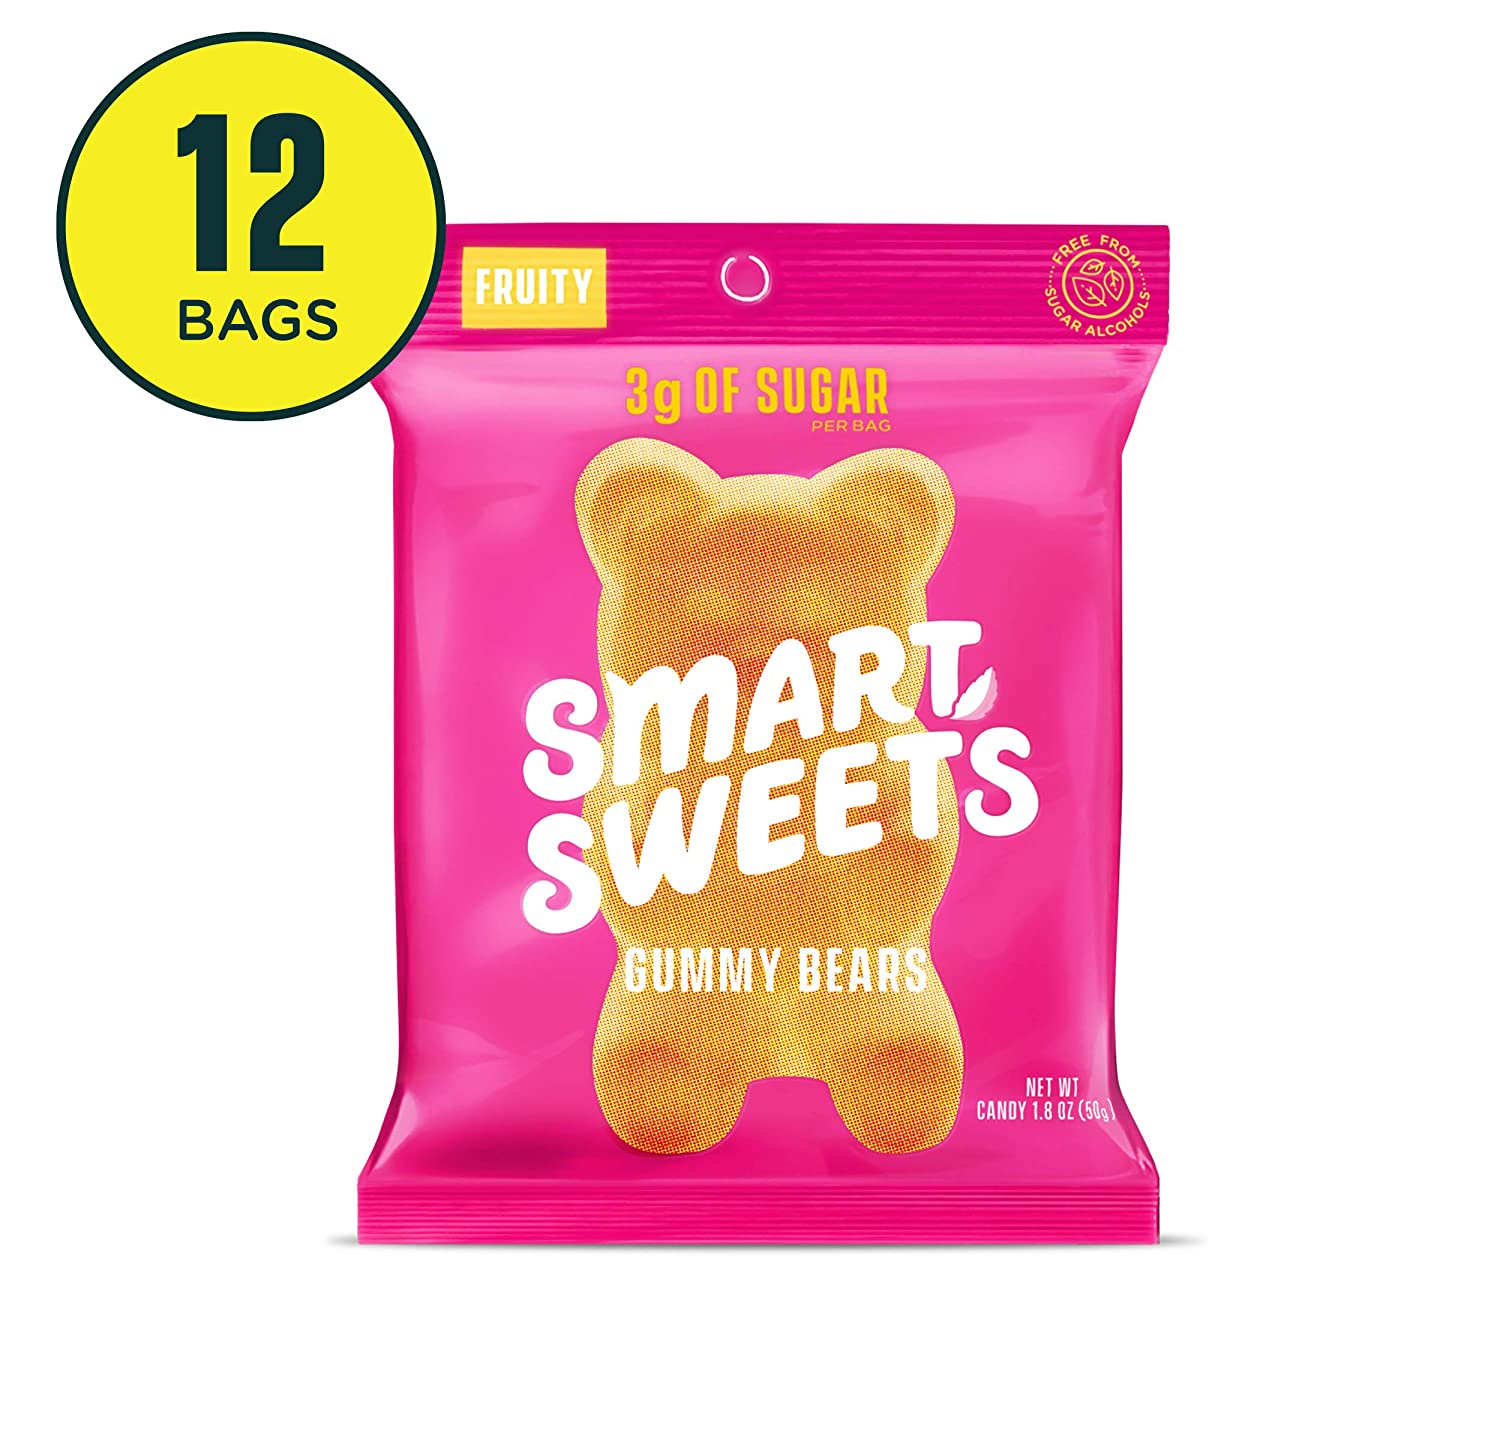 SmartSweets Gummy Bears Fruity 1.8 Oz, Candy With Low-Sugar (3g) & Low Calorie (90)- Free of Sugar Alcohols & No Artificial Sweeteners, Sweetened With Stevia, 12 Count